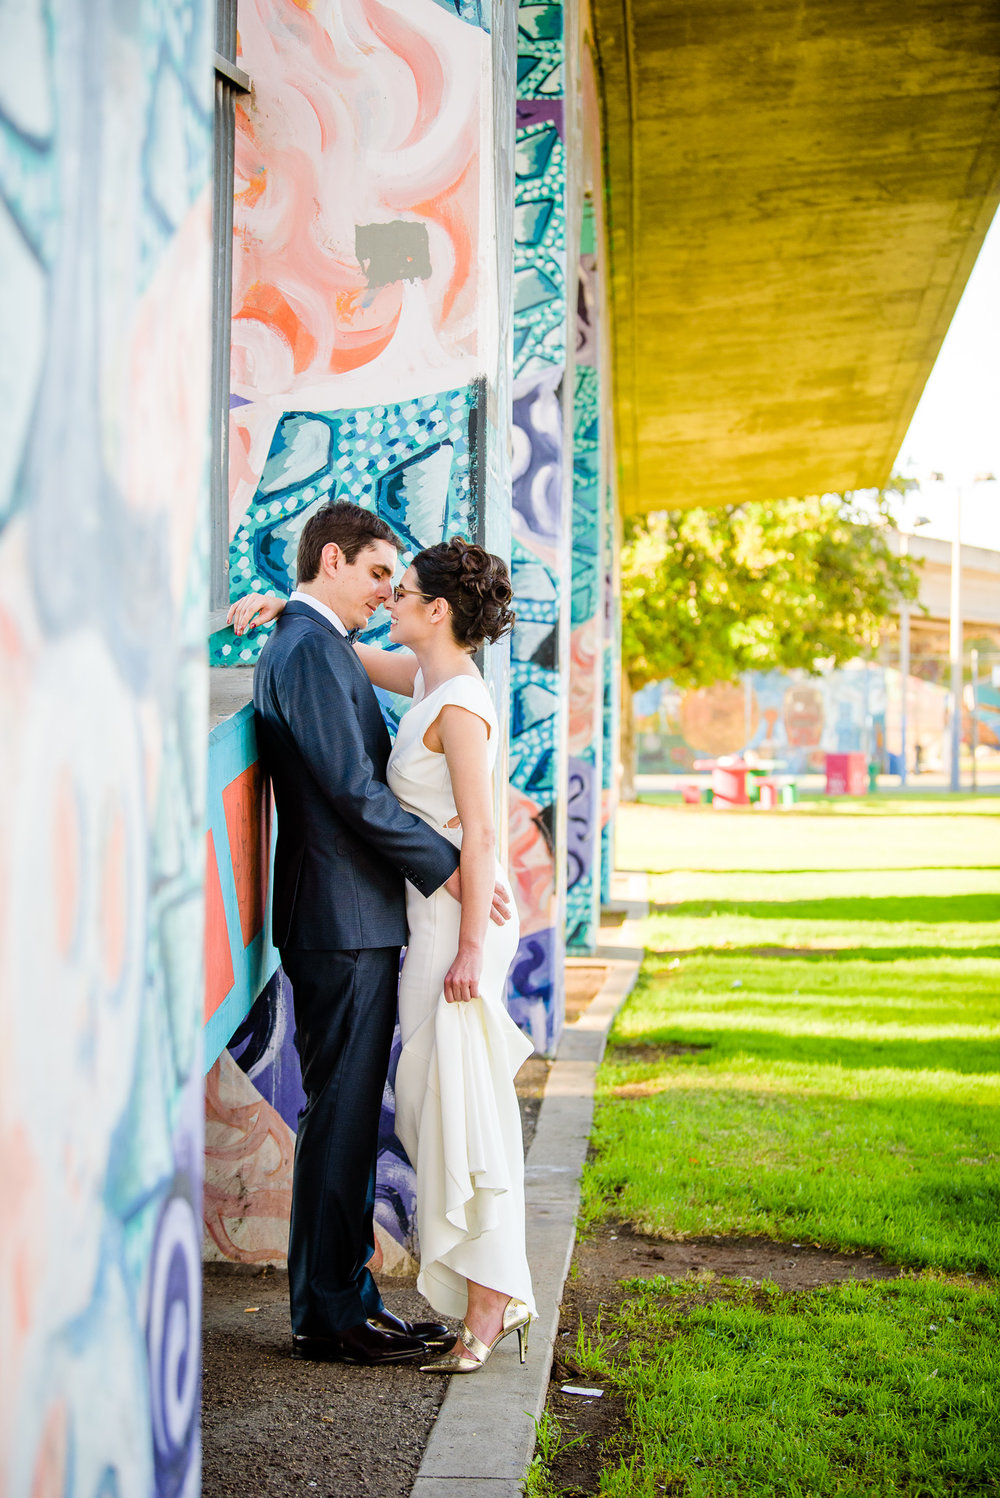 12.29.17 - Michelle and Tommaso Wedding - San Diego Courthouse -  Paul Douda Photography - 023.jpg